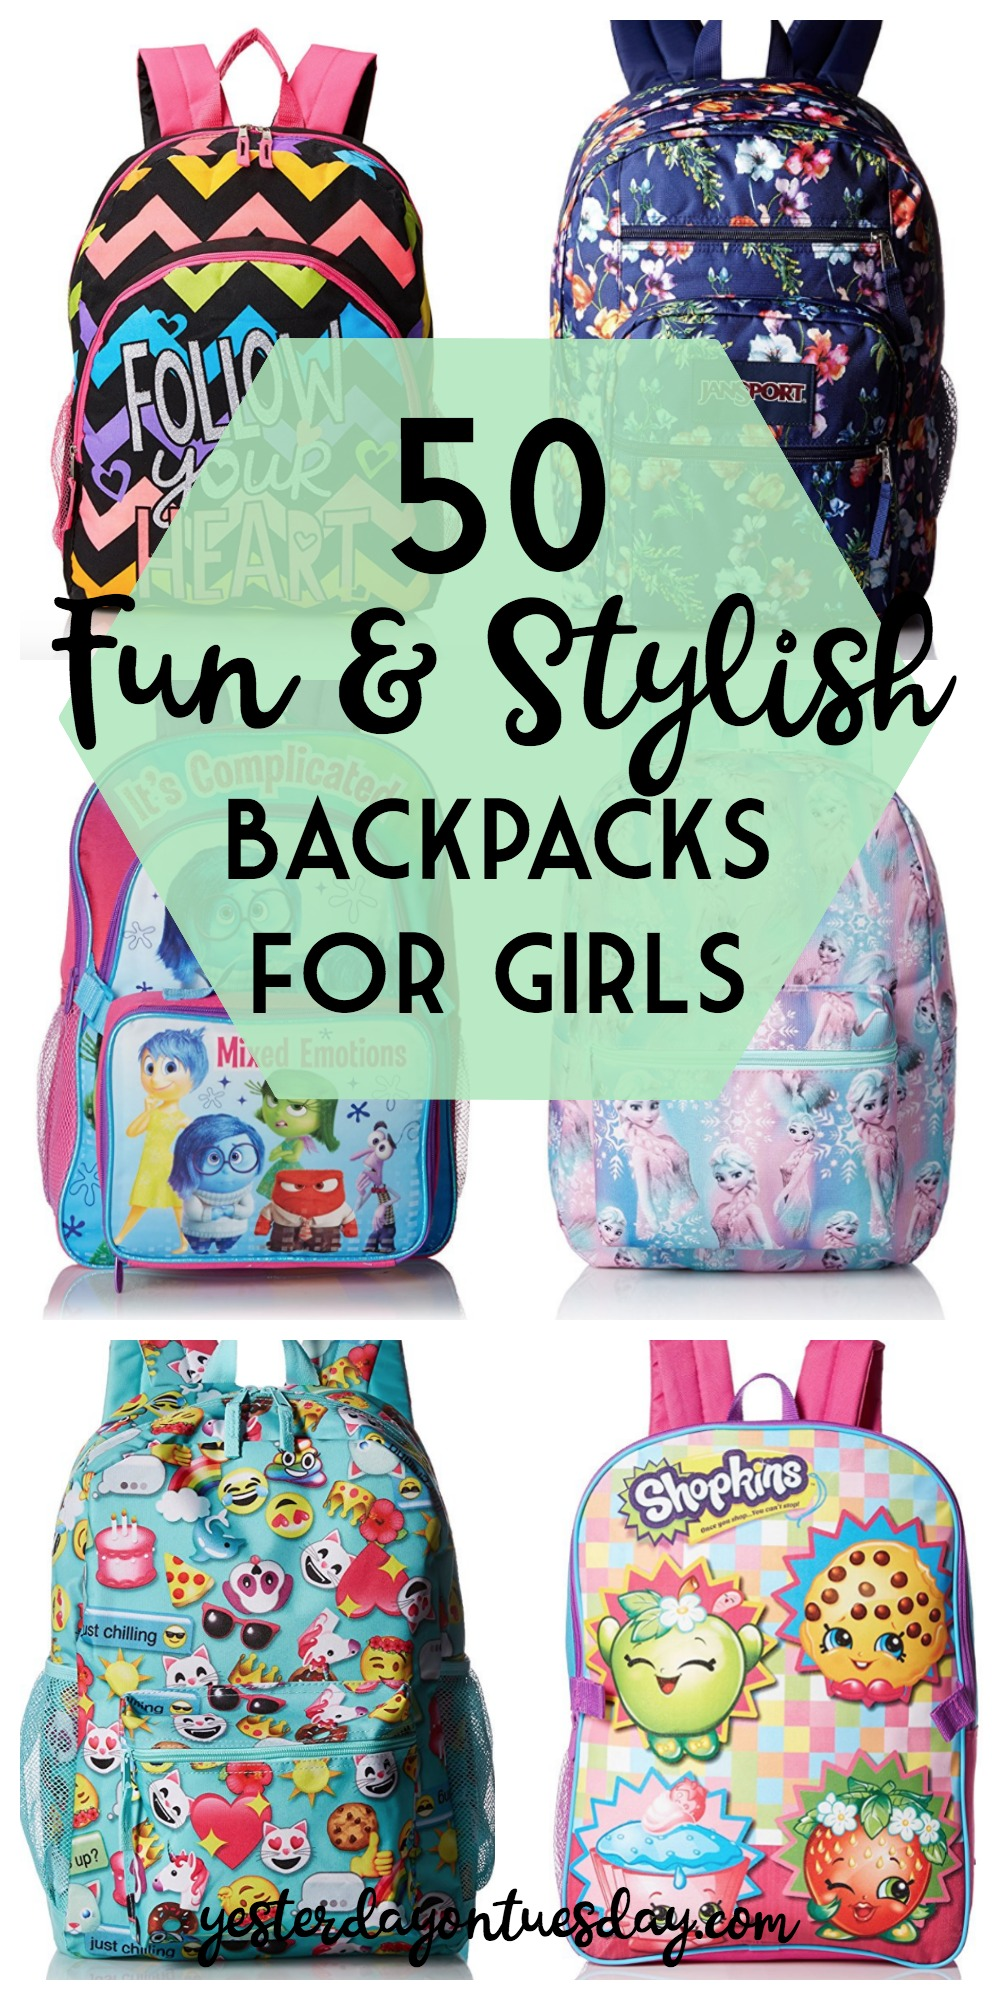 Awesome backpacks to buy for girls